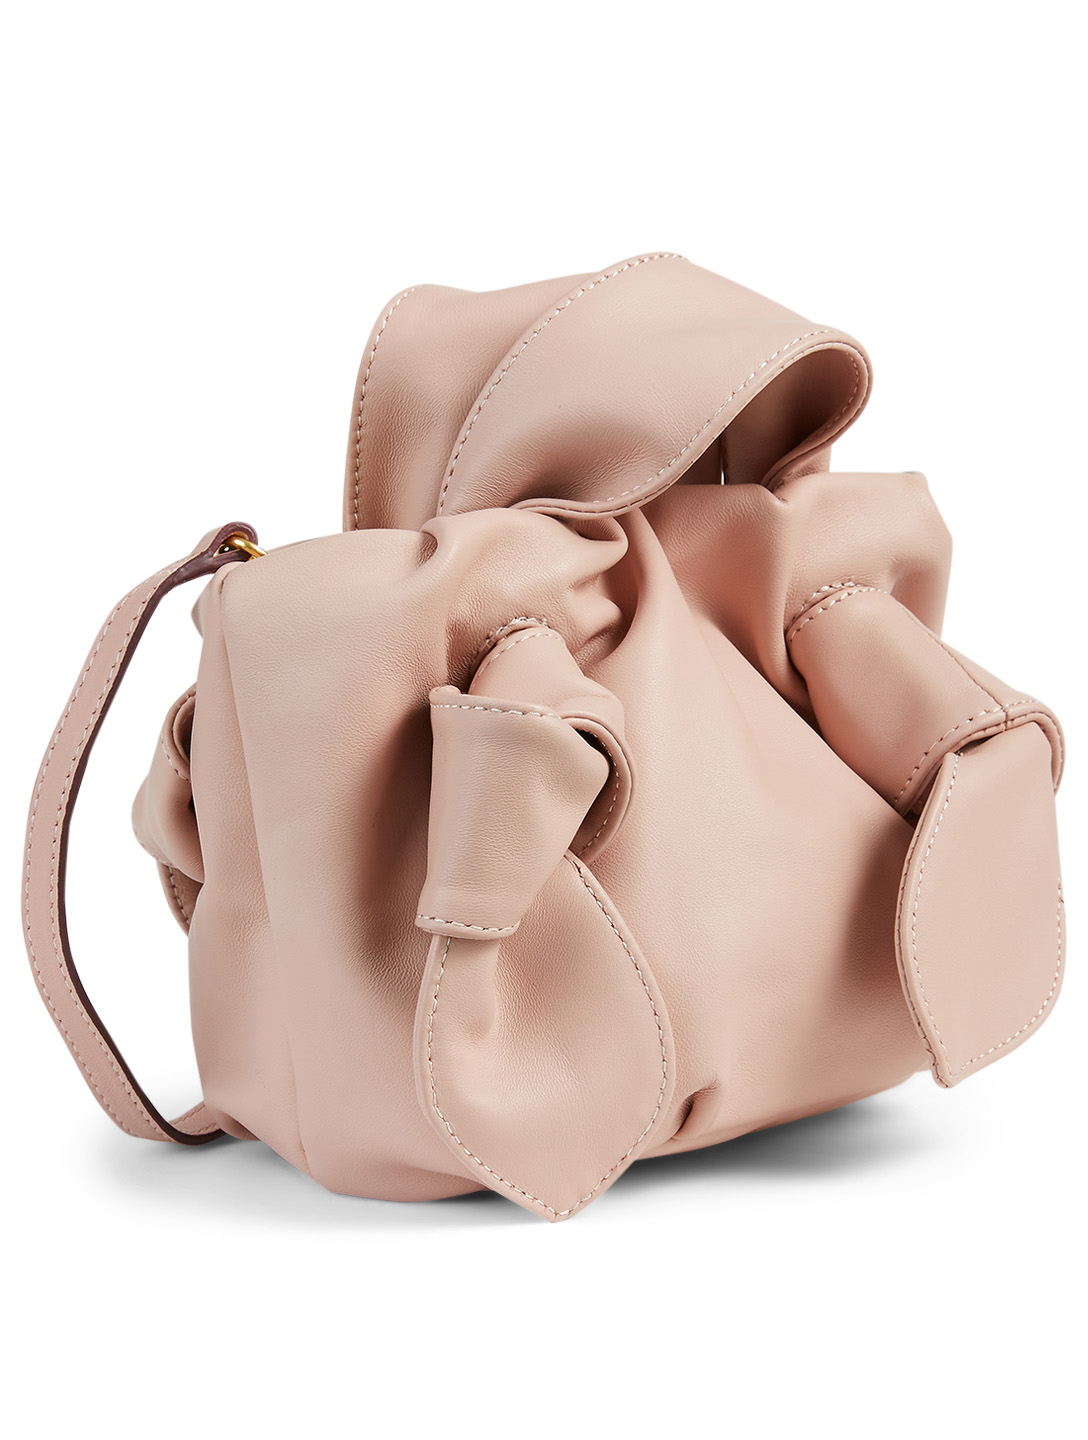 STAUD Ronnie Leather Bag Women's Pink